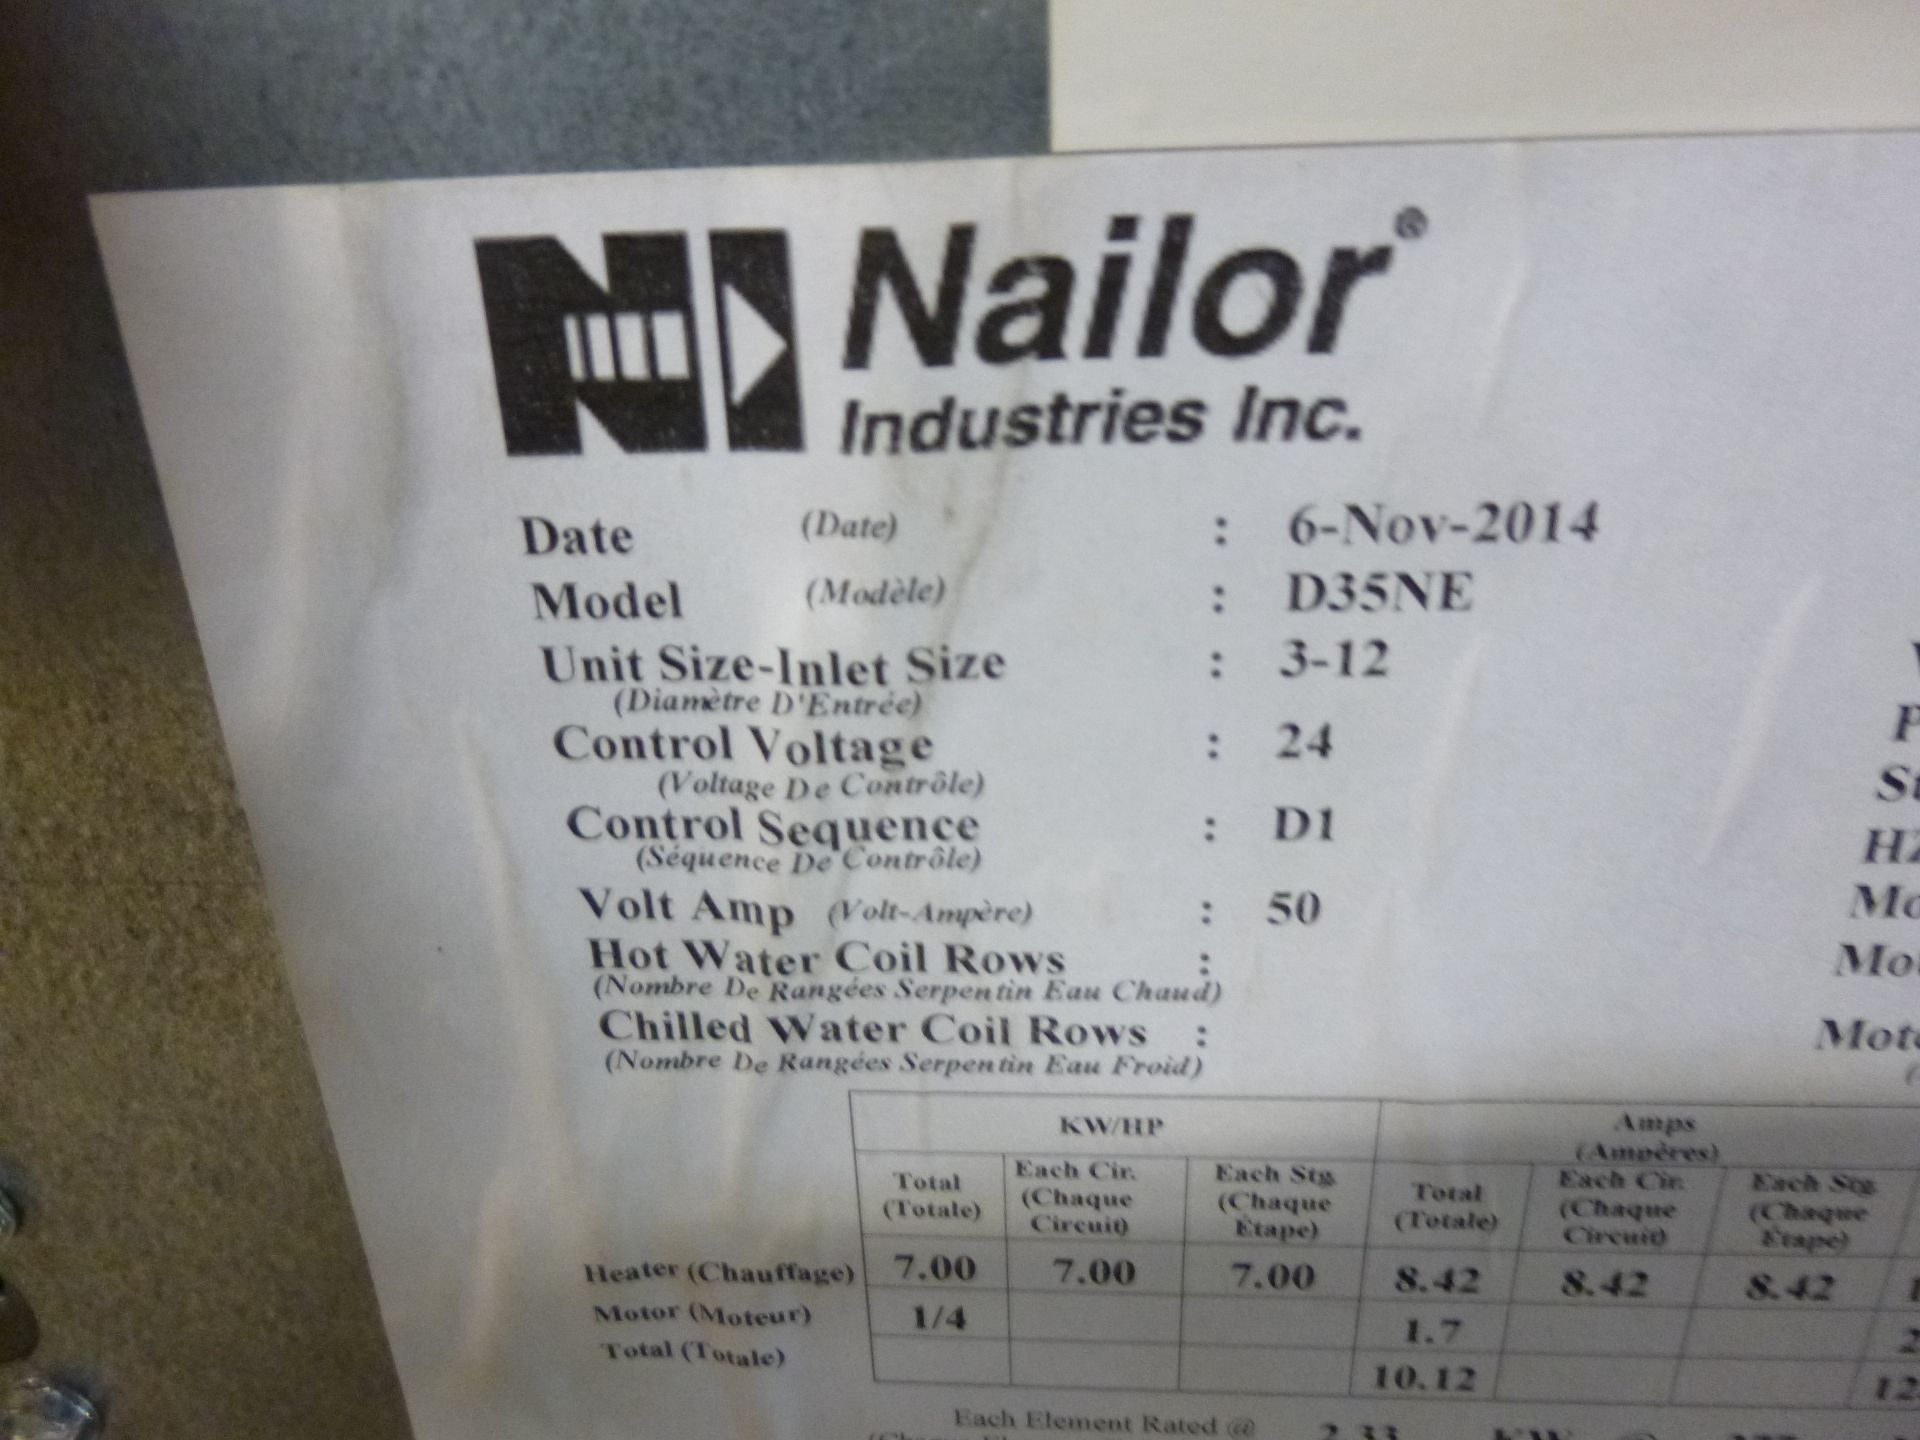 Lot 4 - Nailor Model D35NE Fan powered terminal duct unit with electric heating booster, 480v, 3 phase,